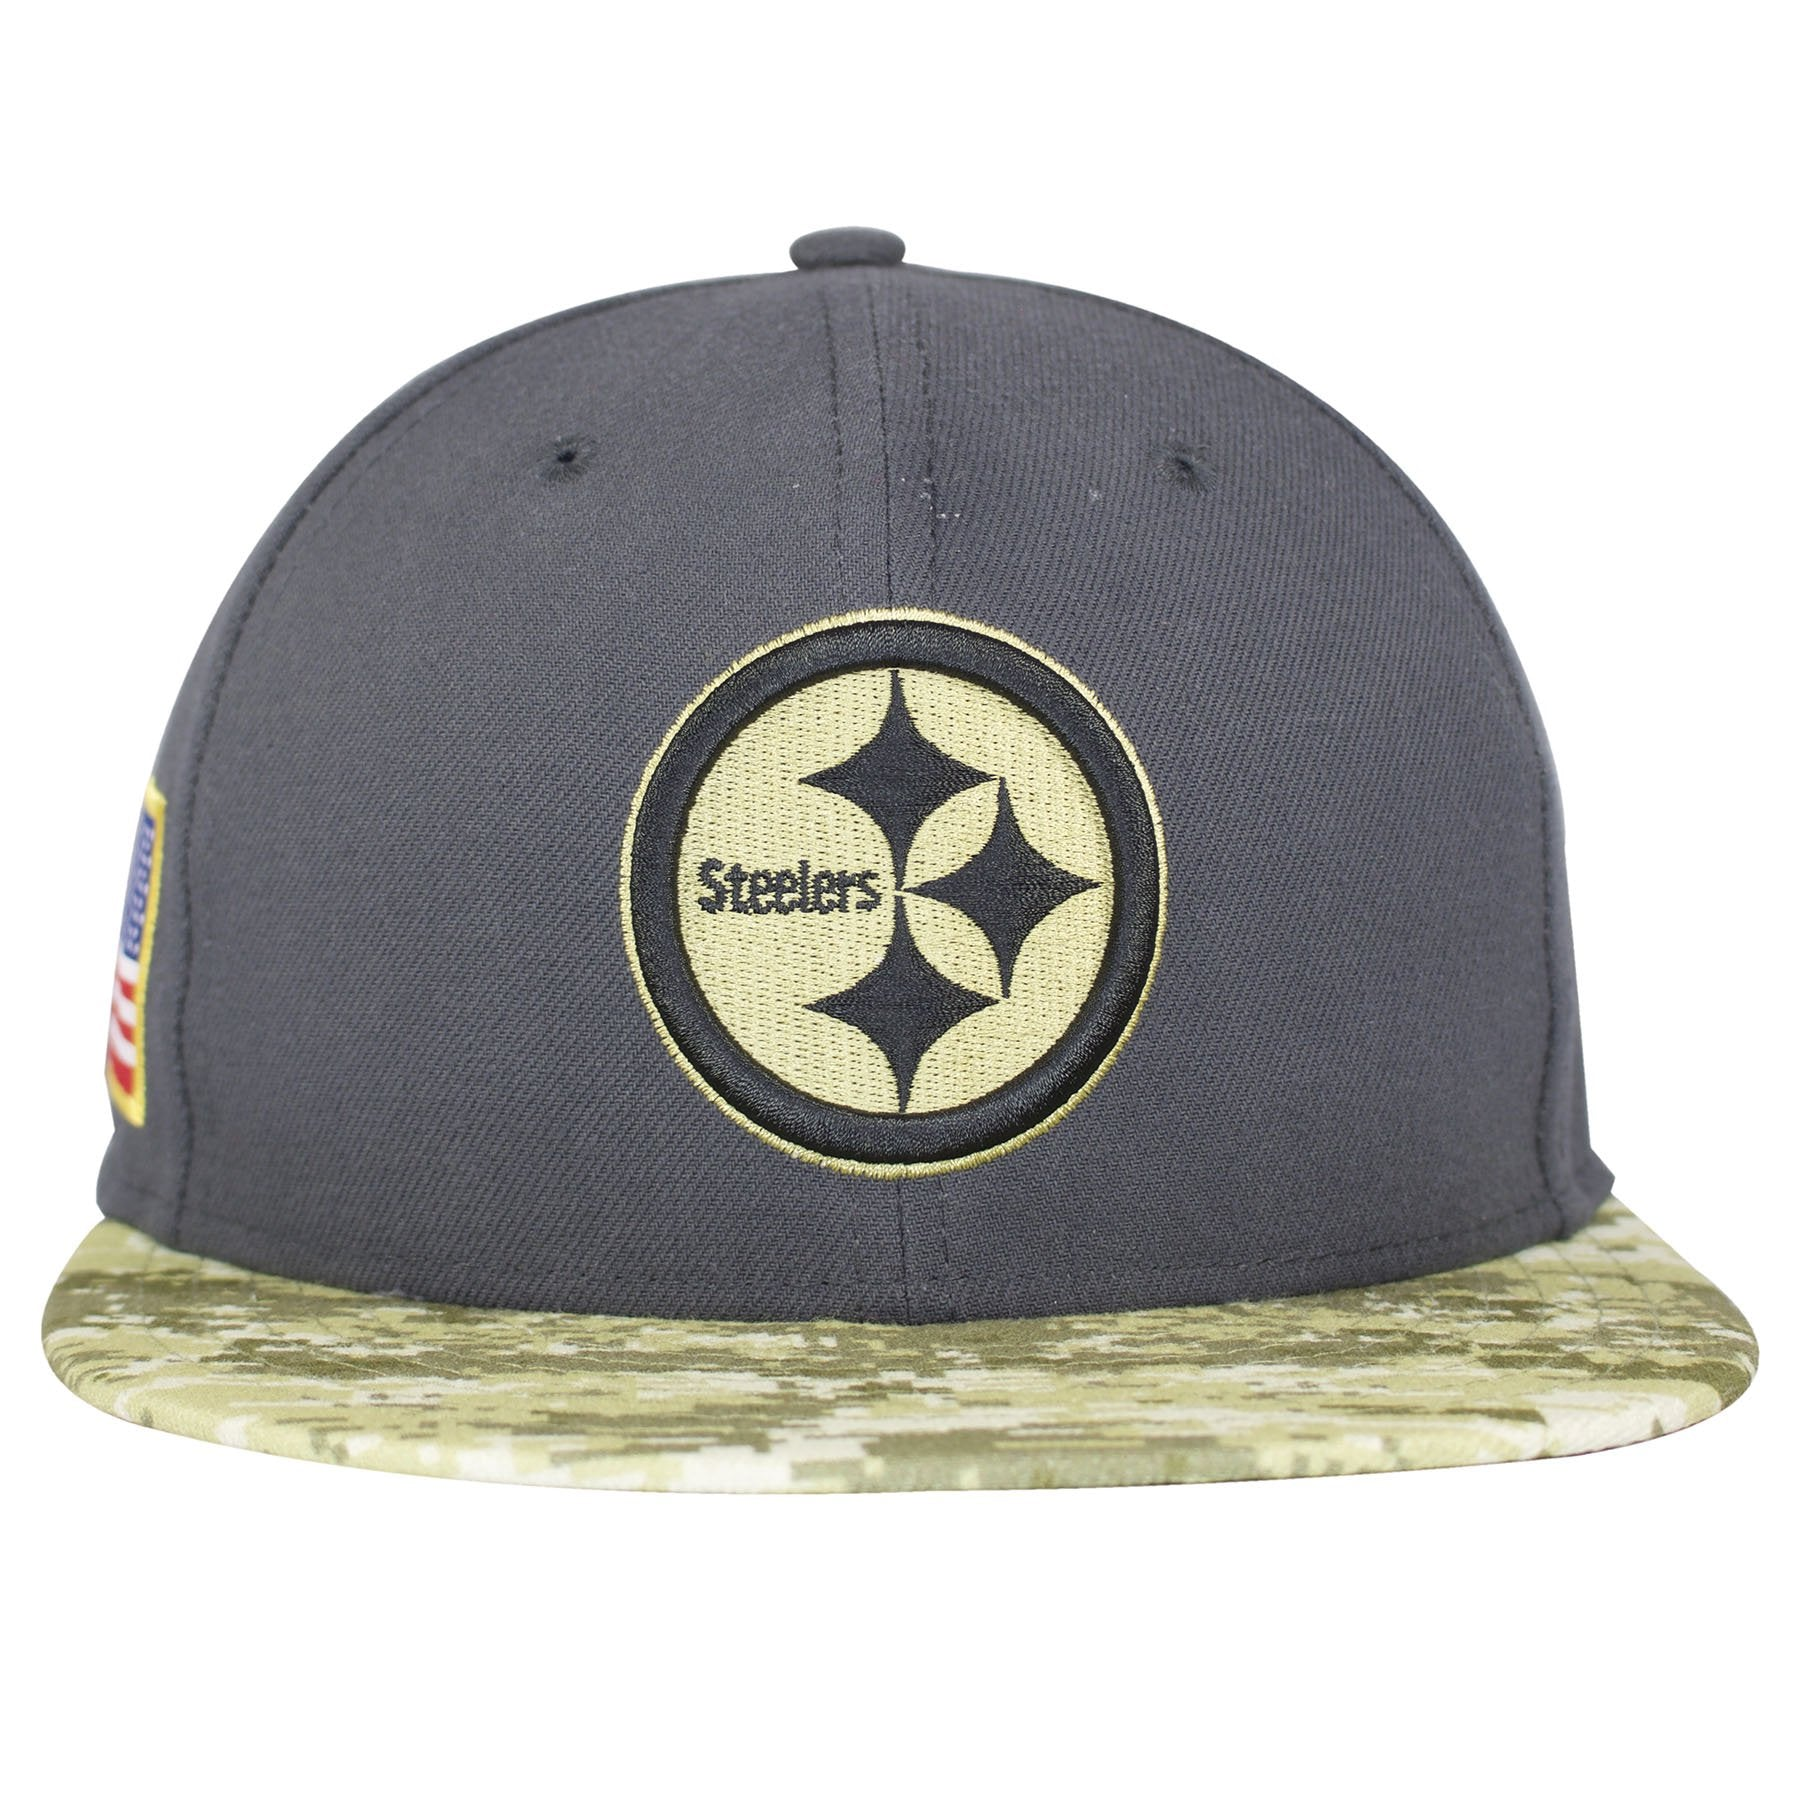 the pittsburgh steelers 2016 salute to service fitted cap has a gray  structured crown and a 71539053108